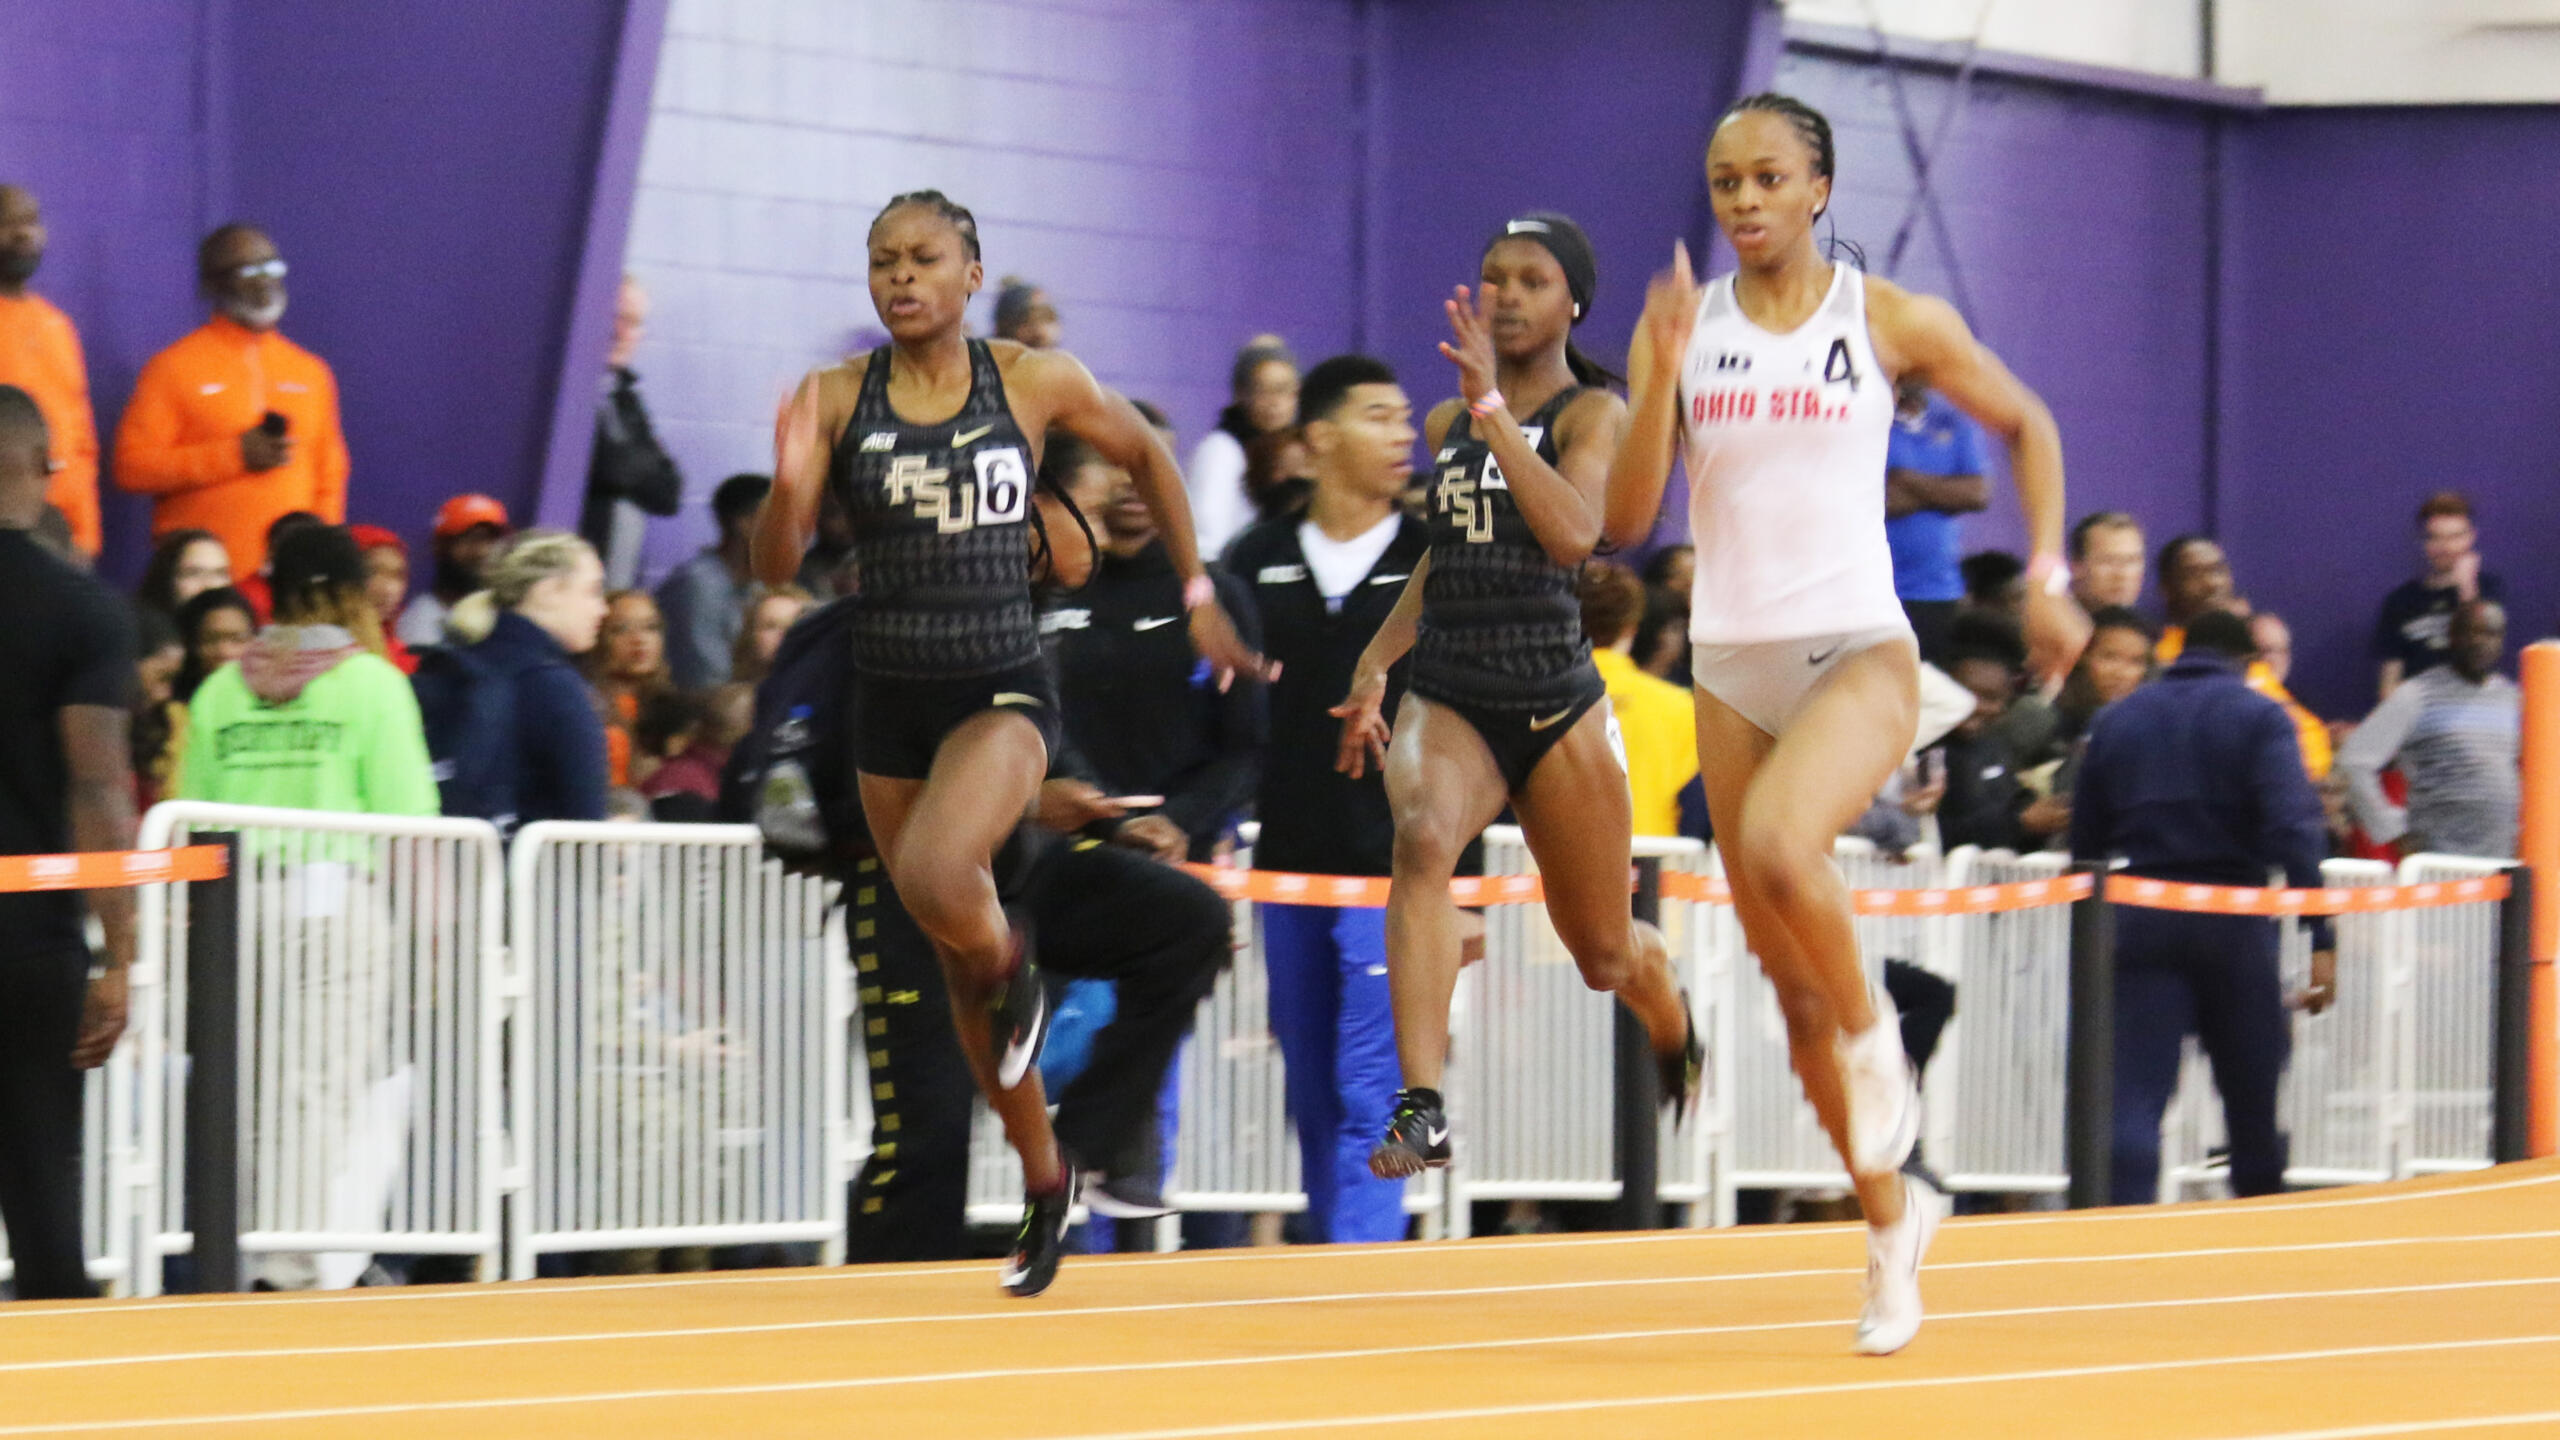 Noles Roll In 200s At Clemson; Wallace, Hall Shine As Well